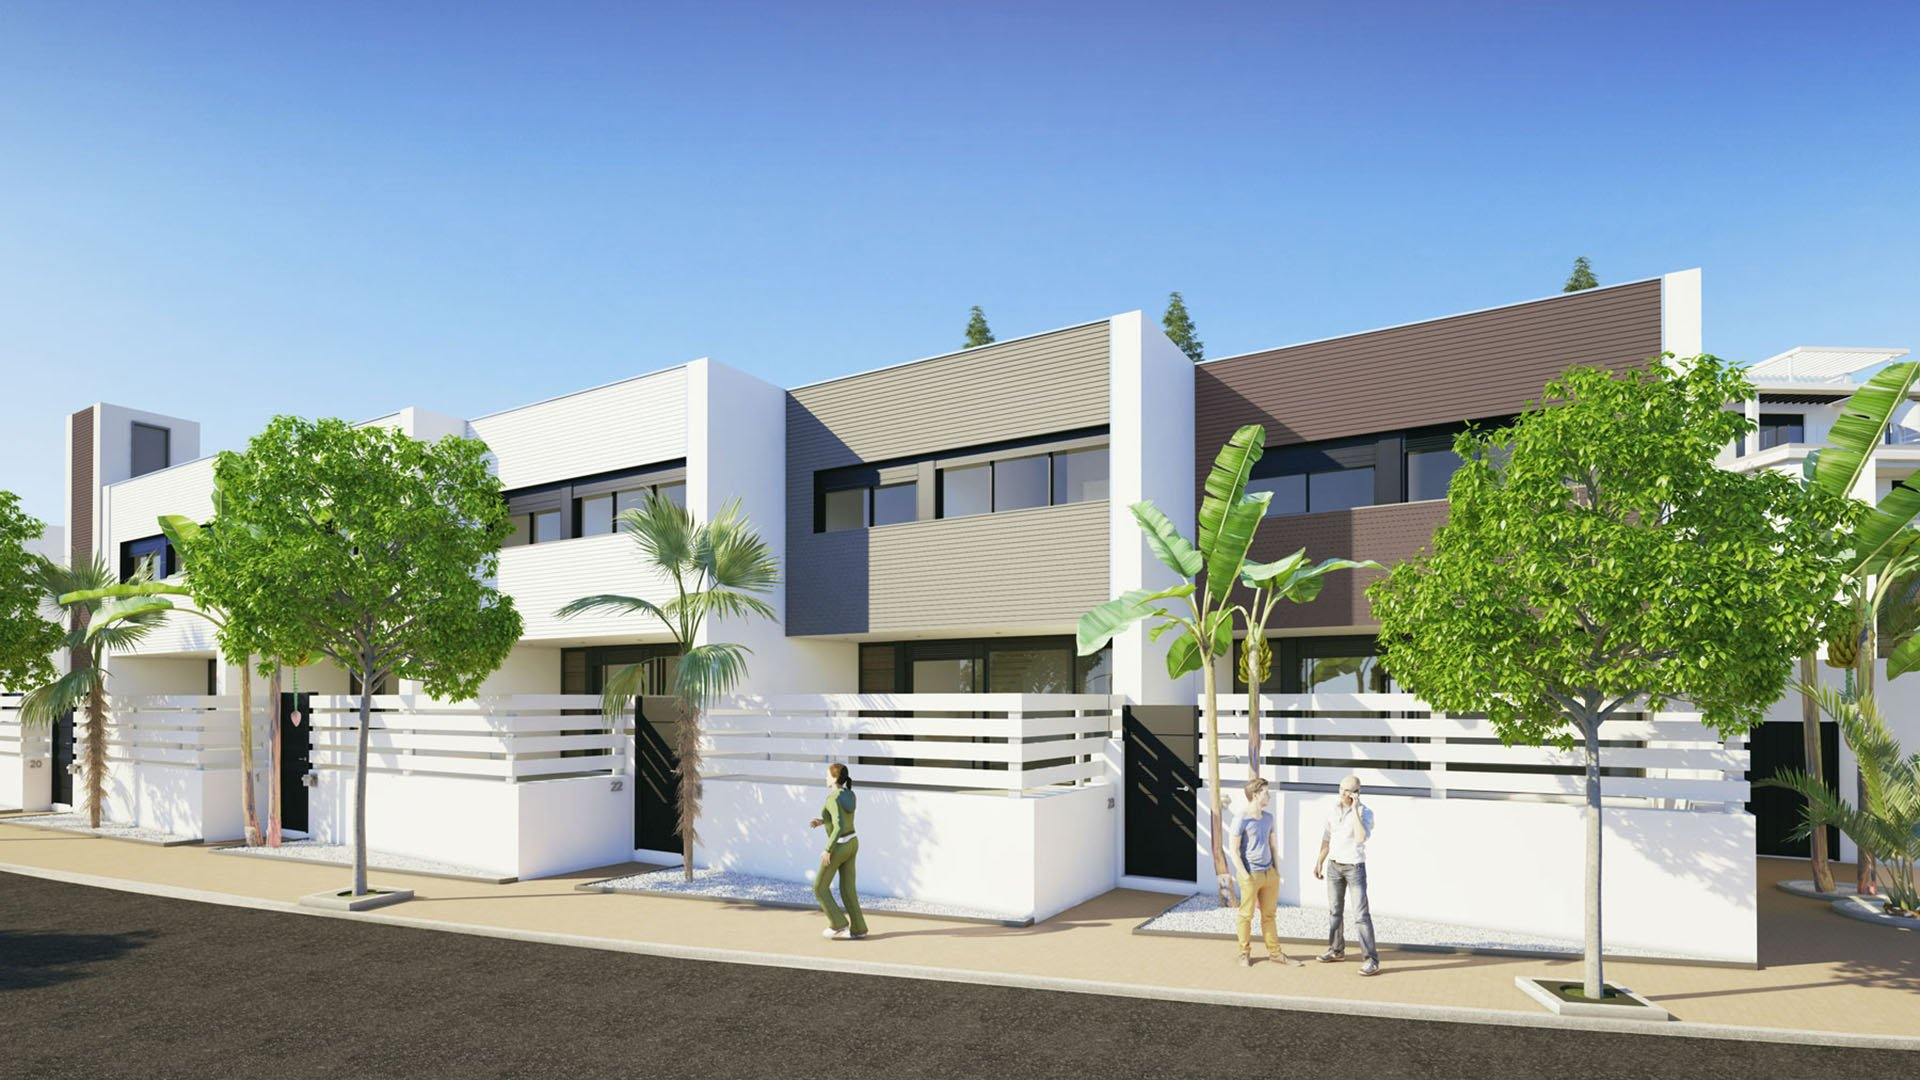 Le Mirage: Townhouses and apartments on the New Golden Mile